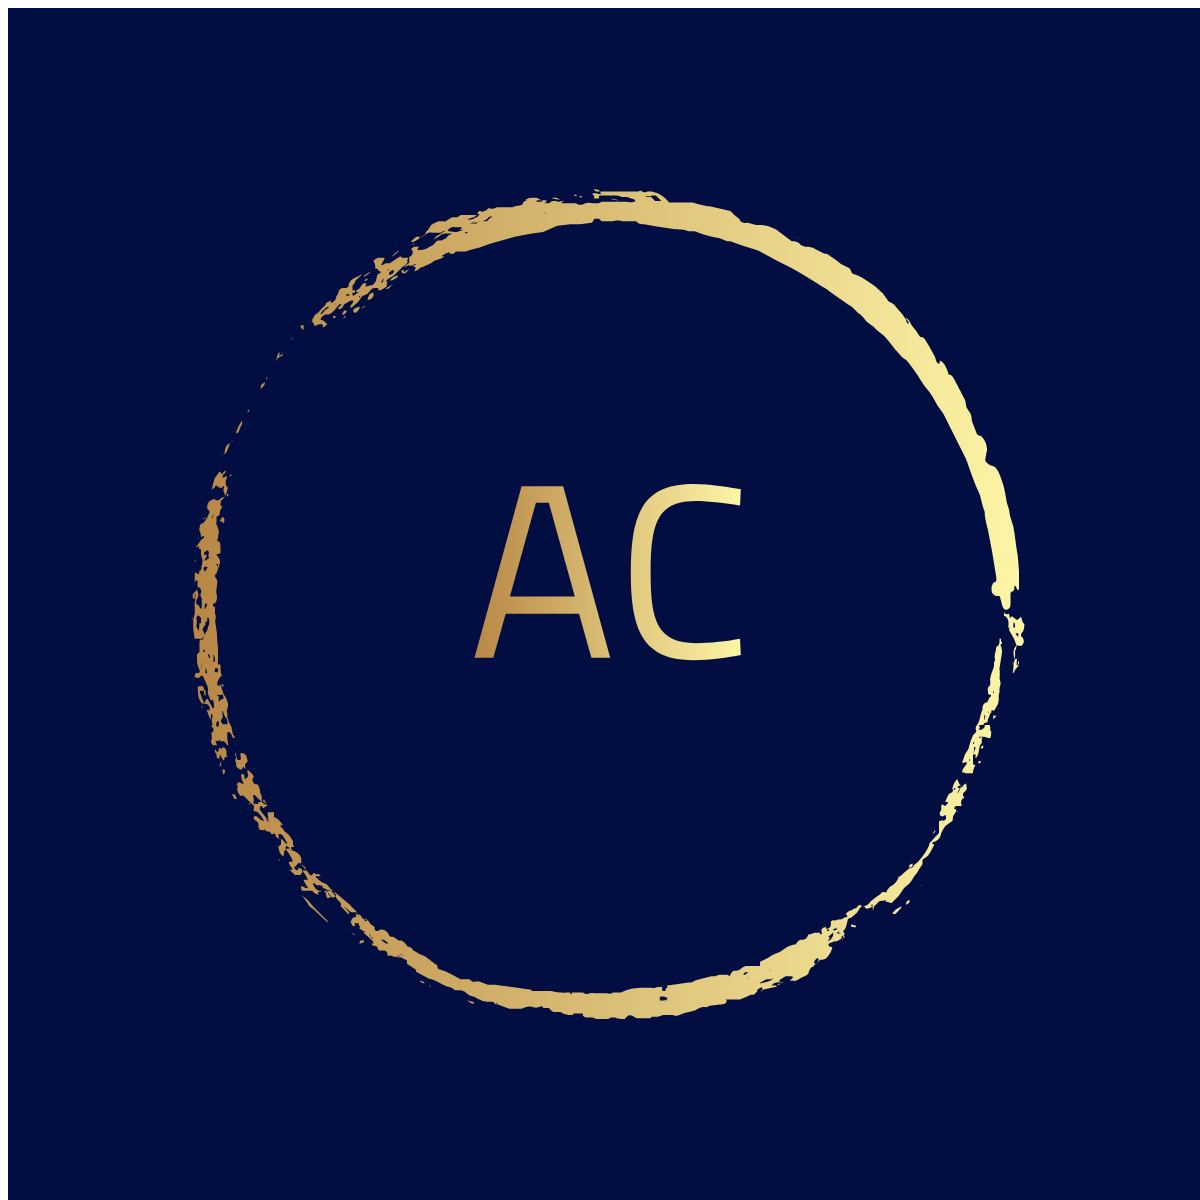 AC Administration Services